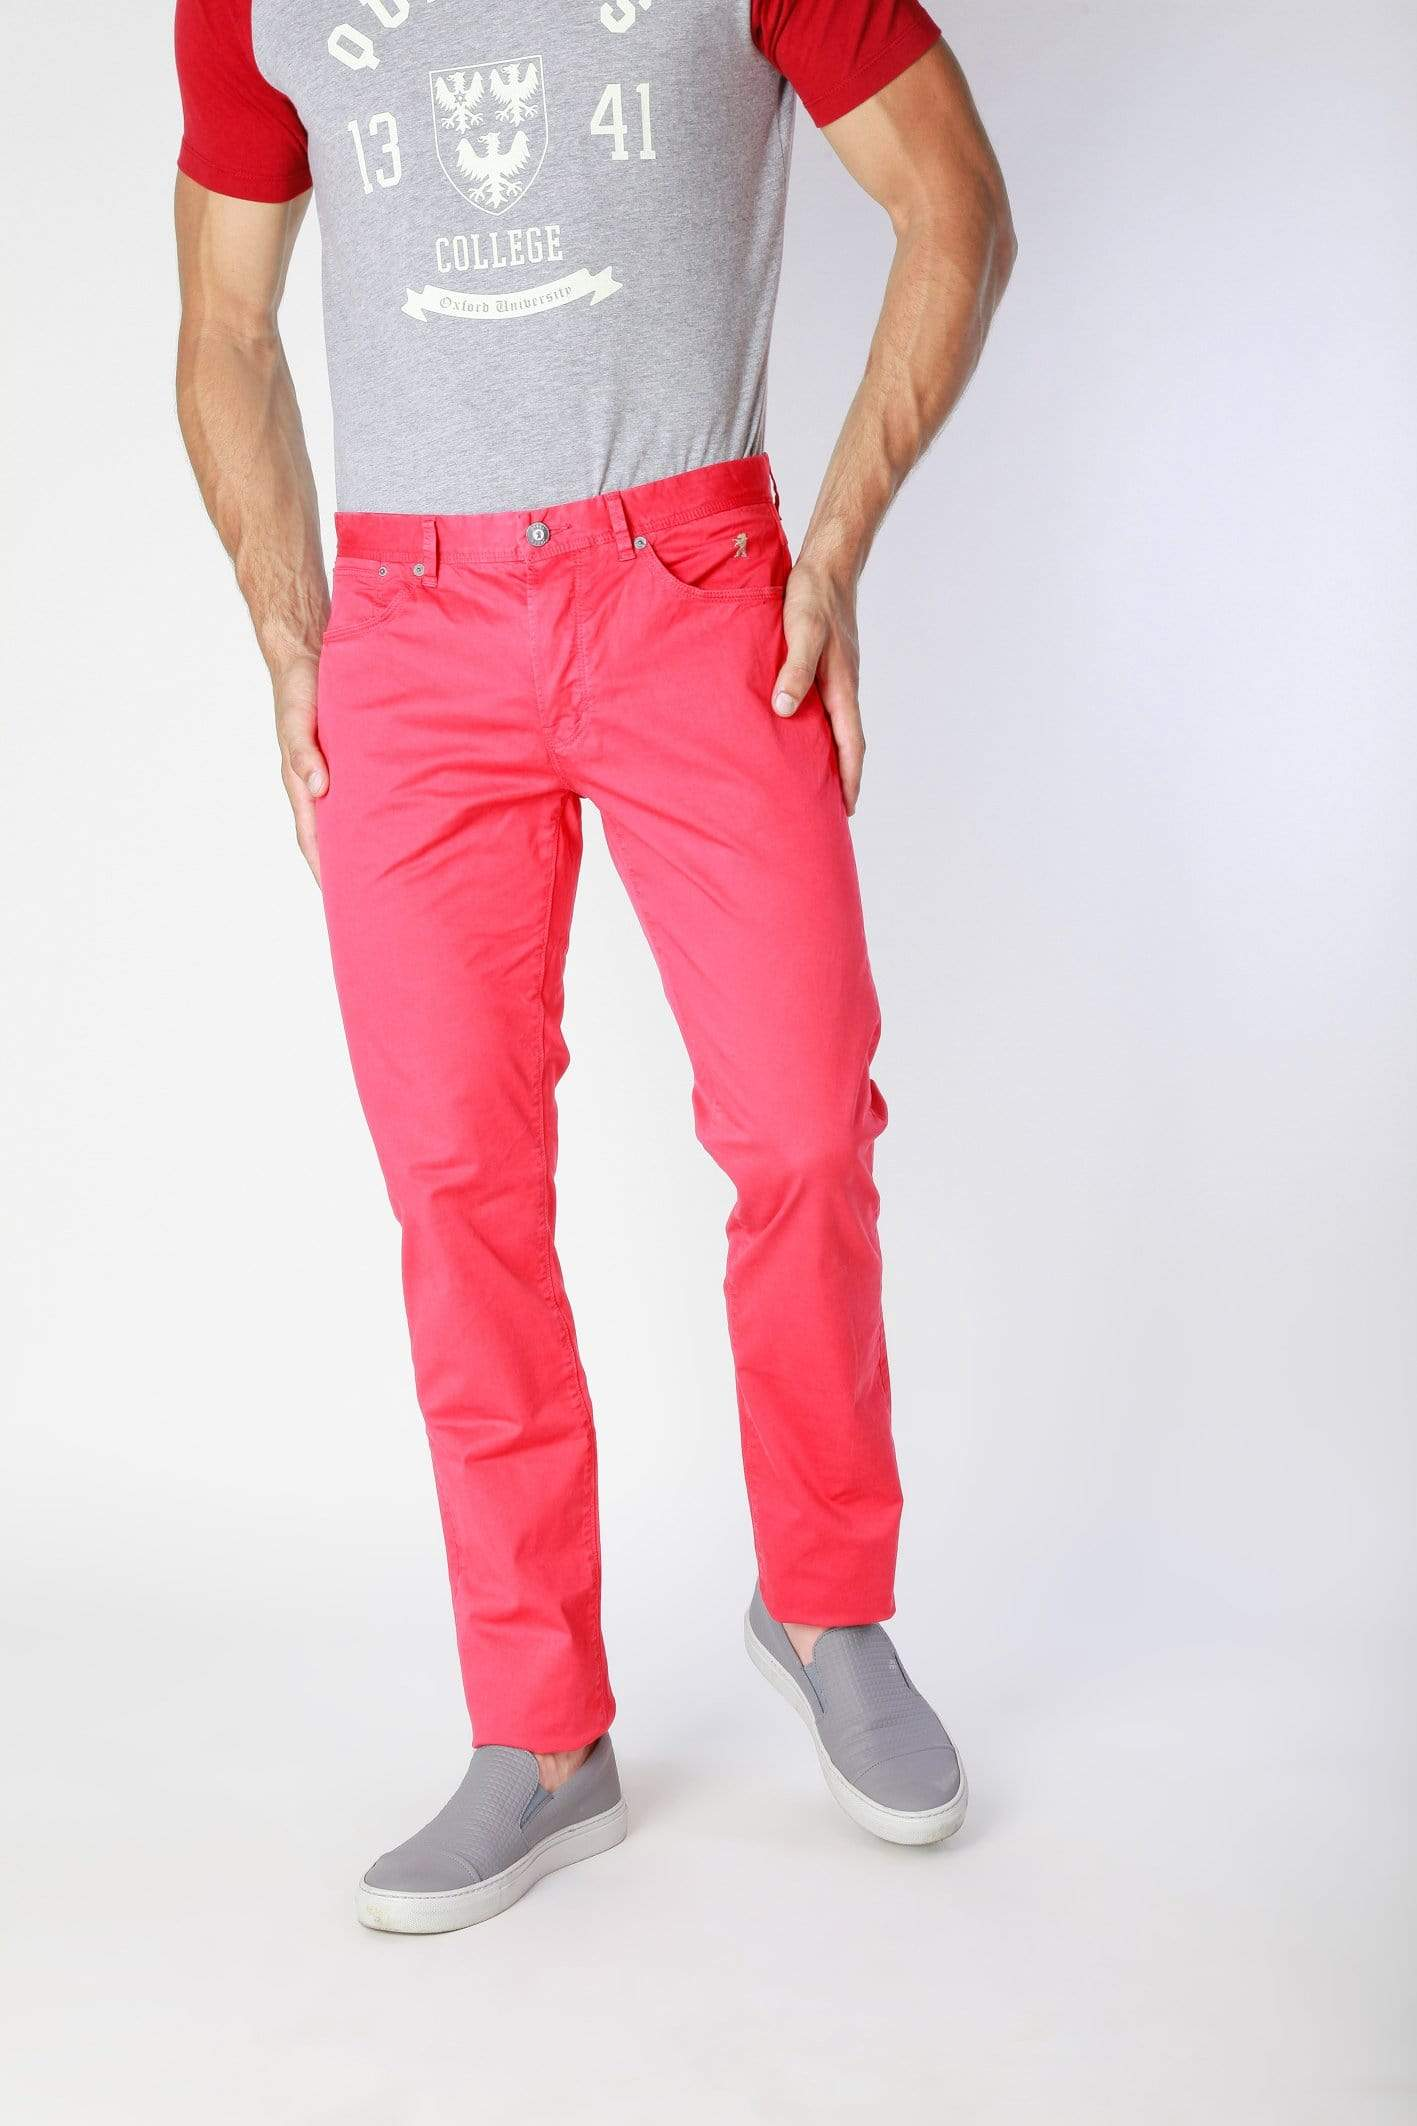 Jaggy Clothing Trousers red / 30 Jaggy - J1551T812-1M